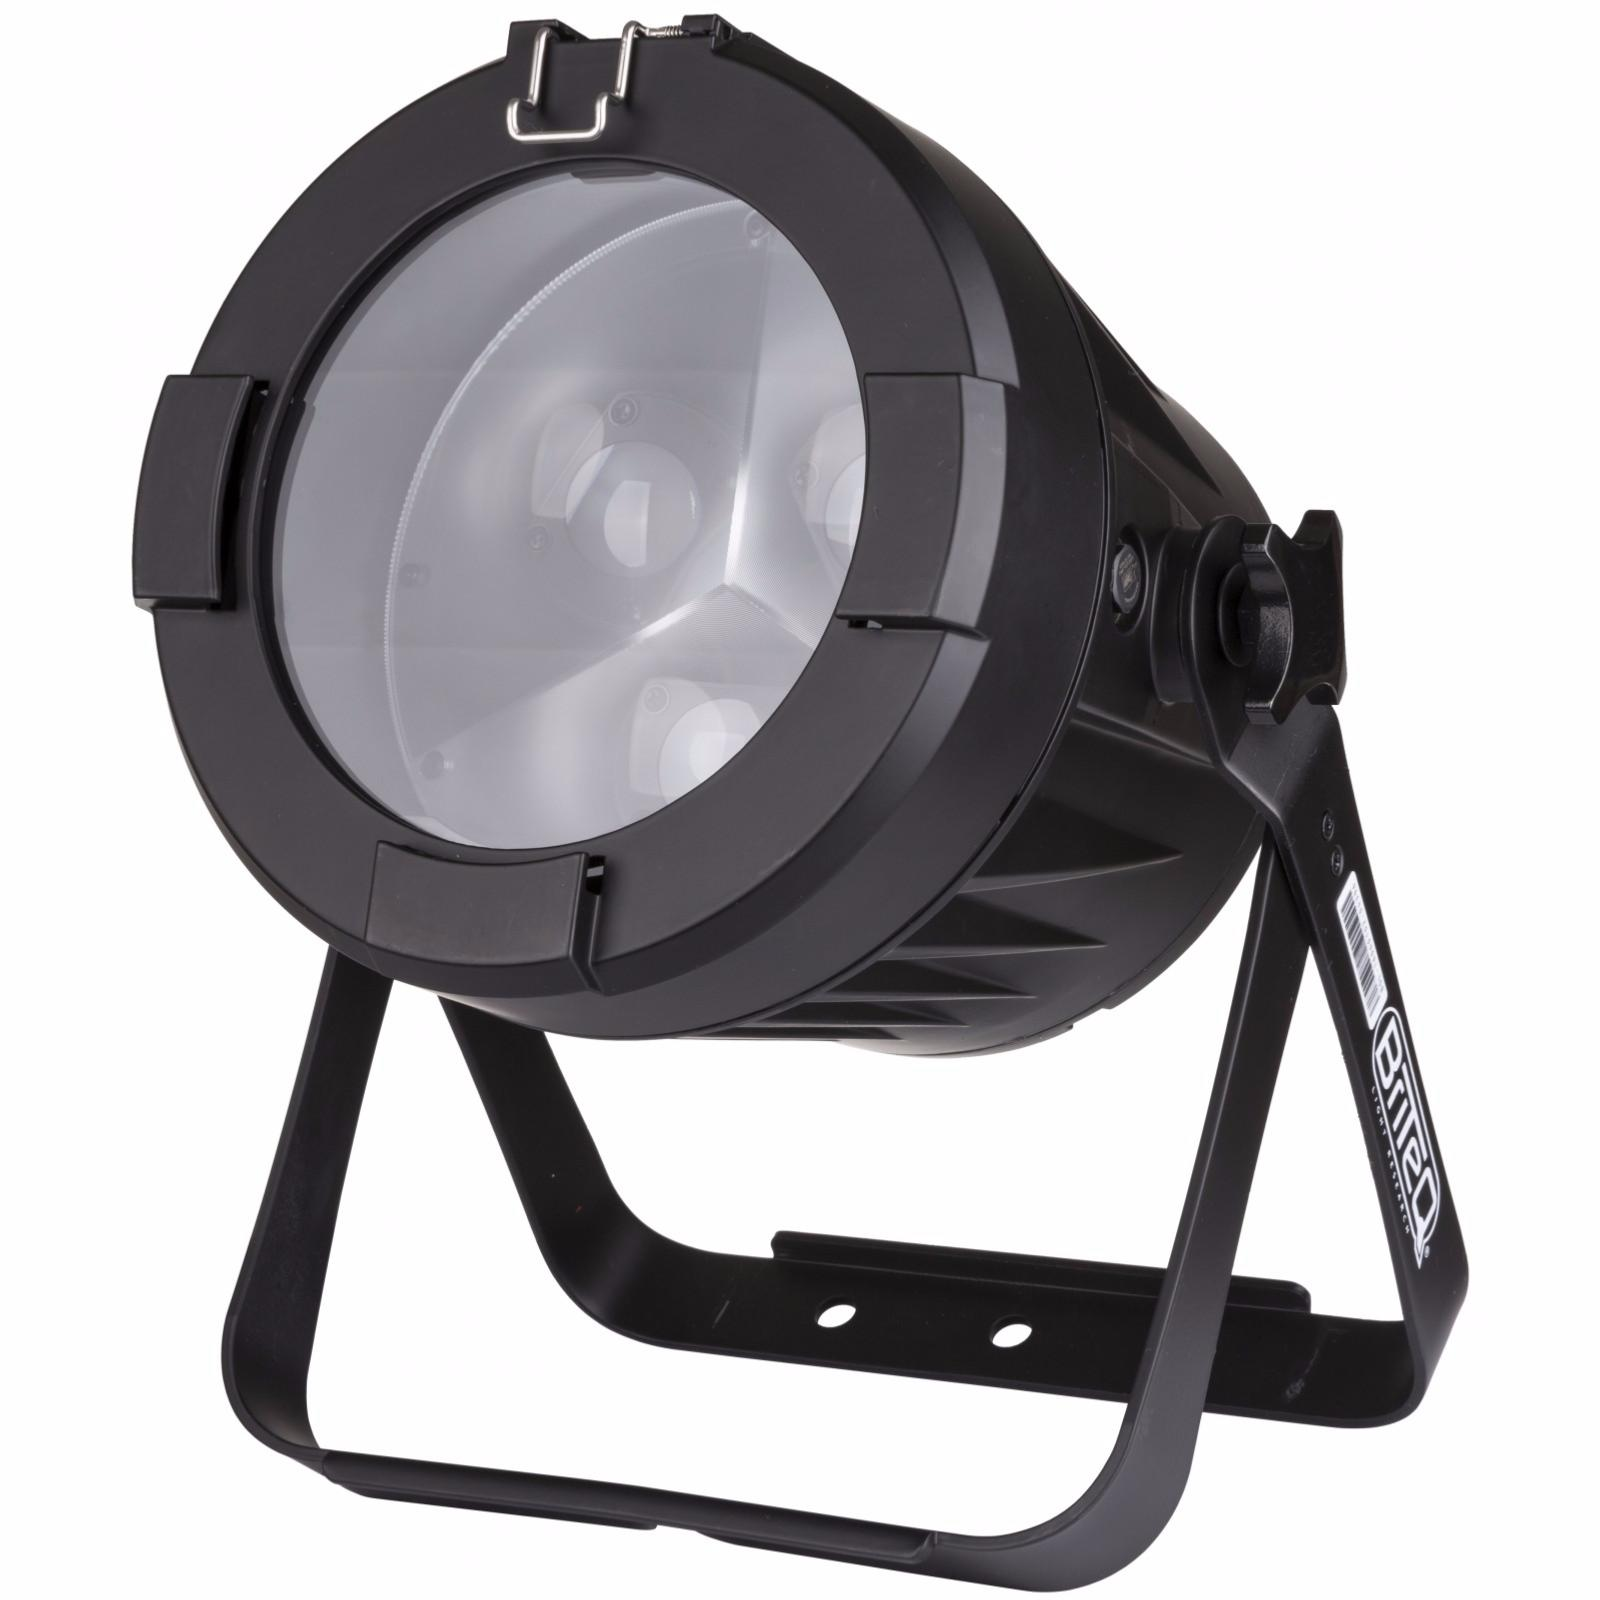 BRITEQ BT-ULTRAZOOM Projecteur Led RGBW 180W - zoom motorisé 4° à 40° IP65